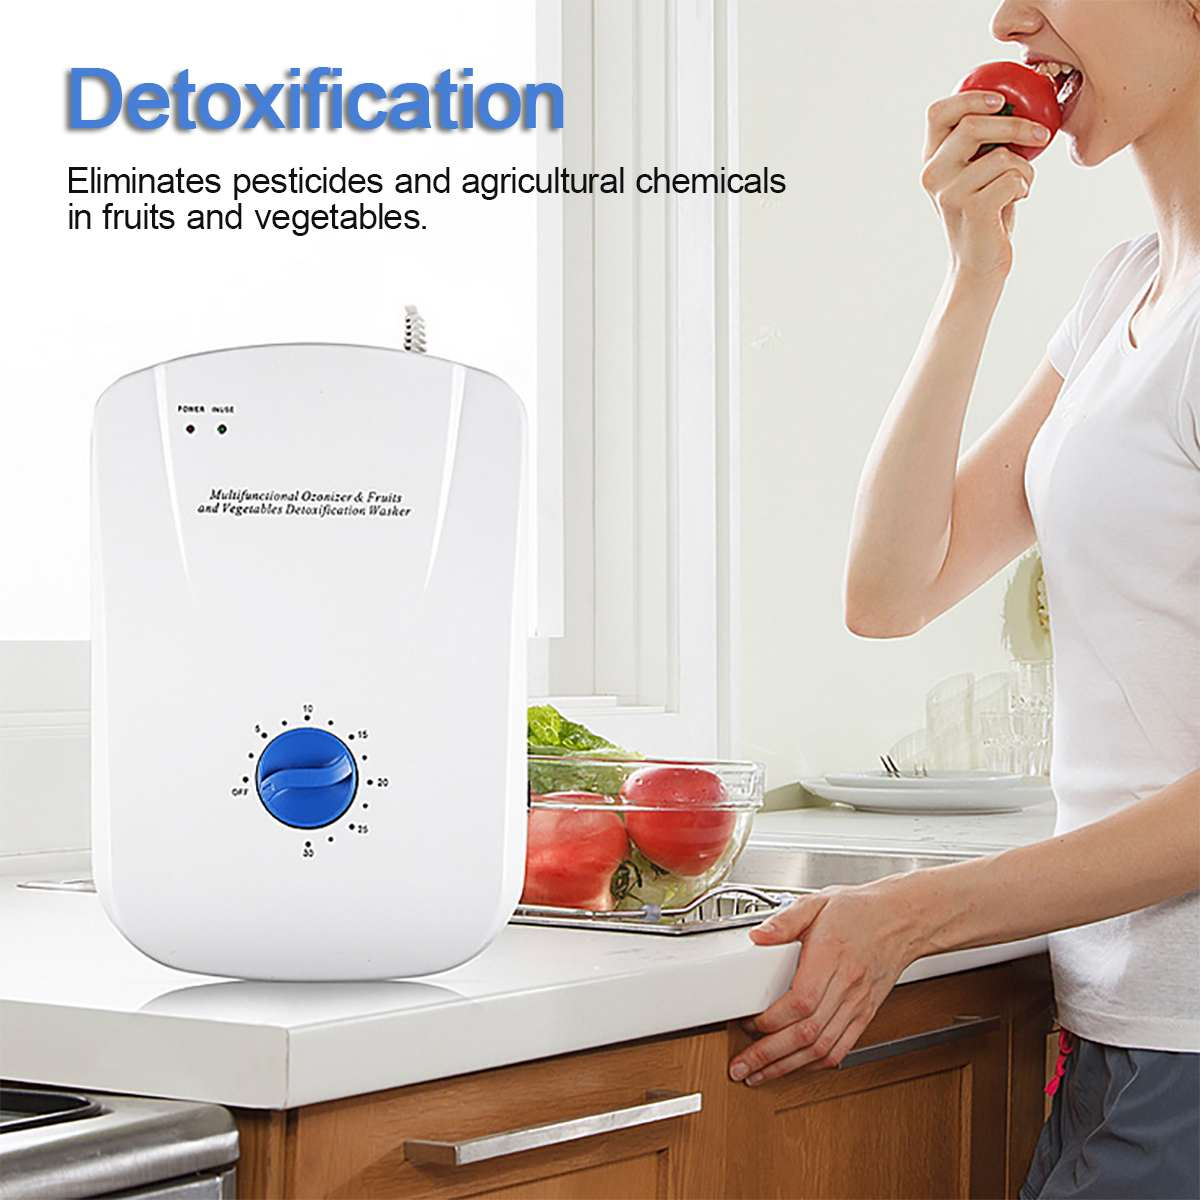 400mg/h Portable Ozone Generator Ozonator ionizer Home sterilizer Timer Air Purifiers Oil Vegetable